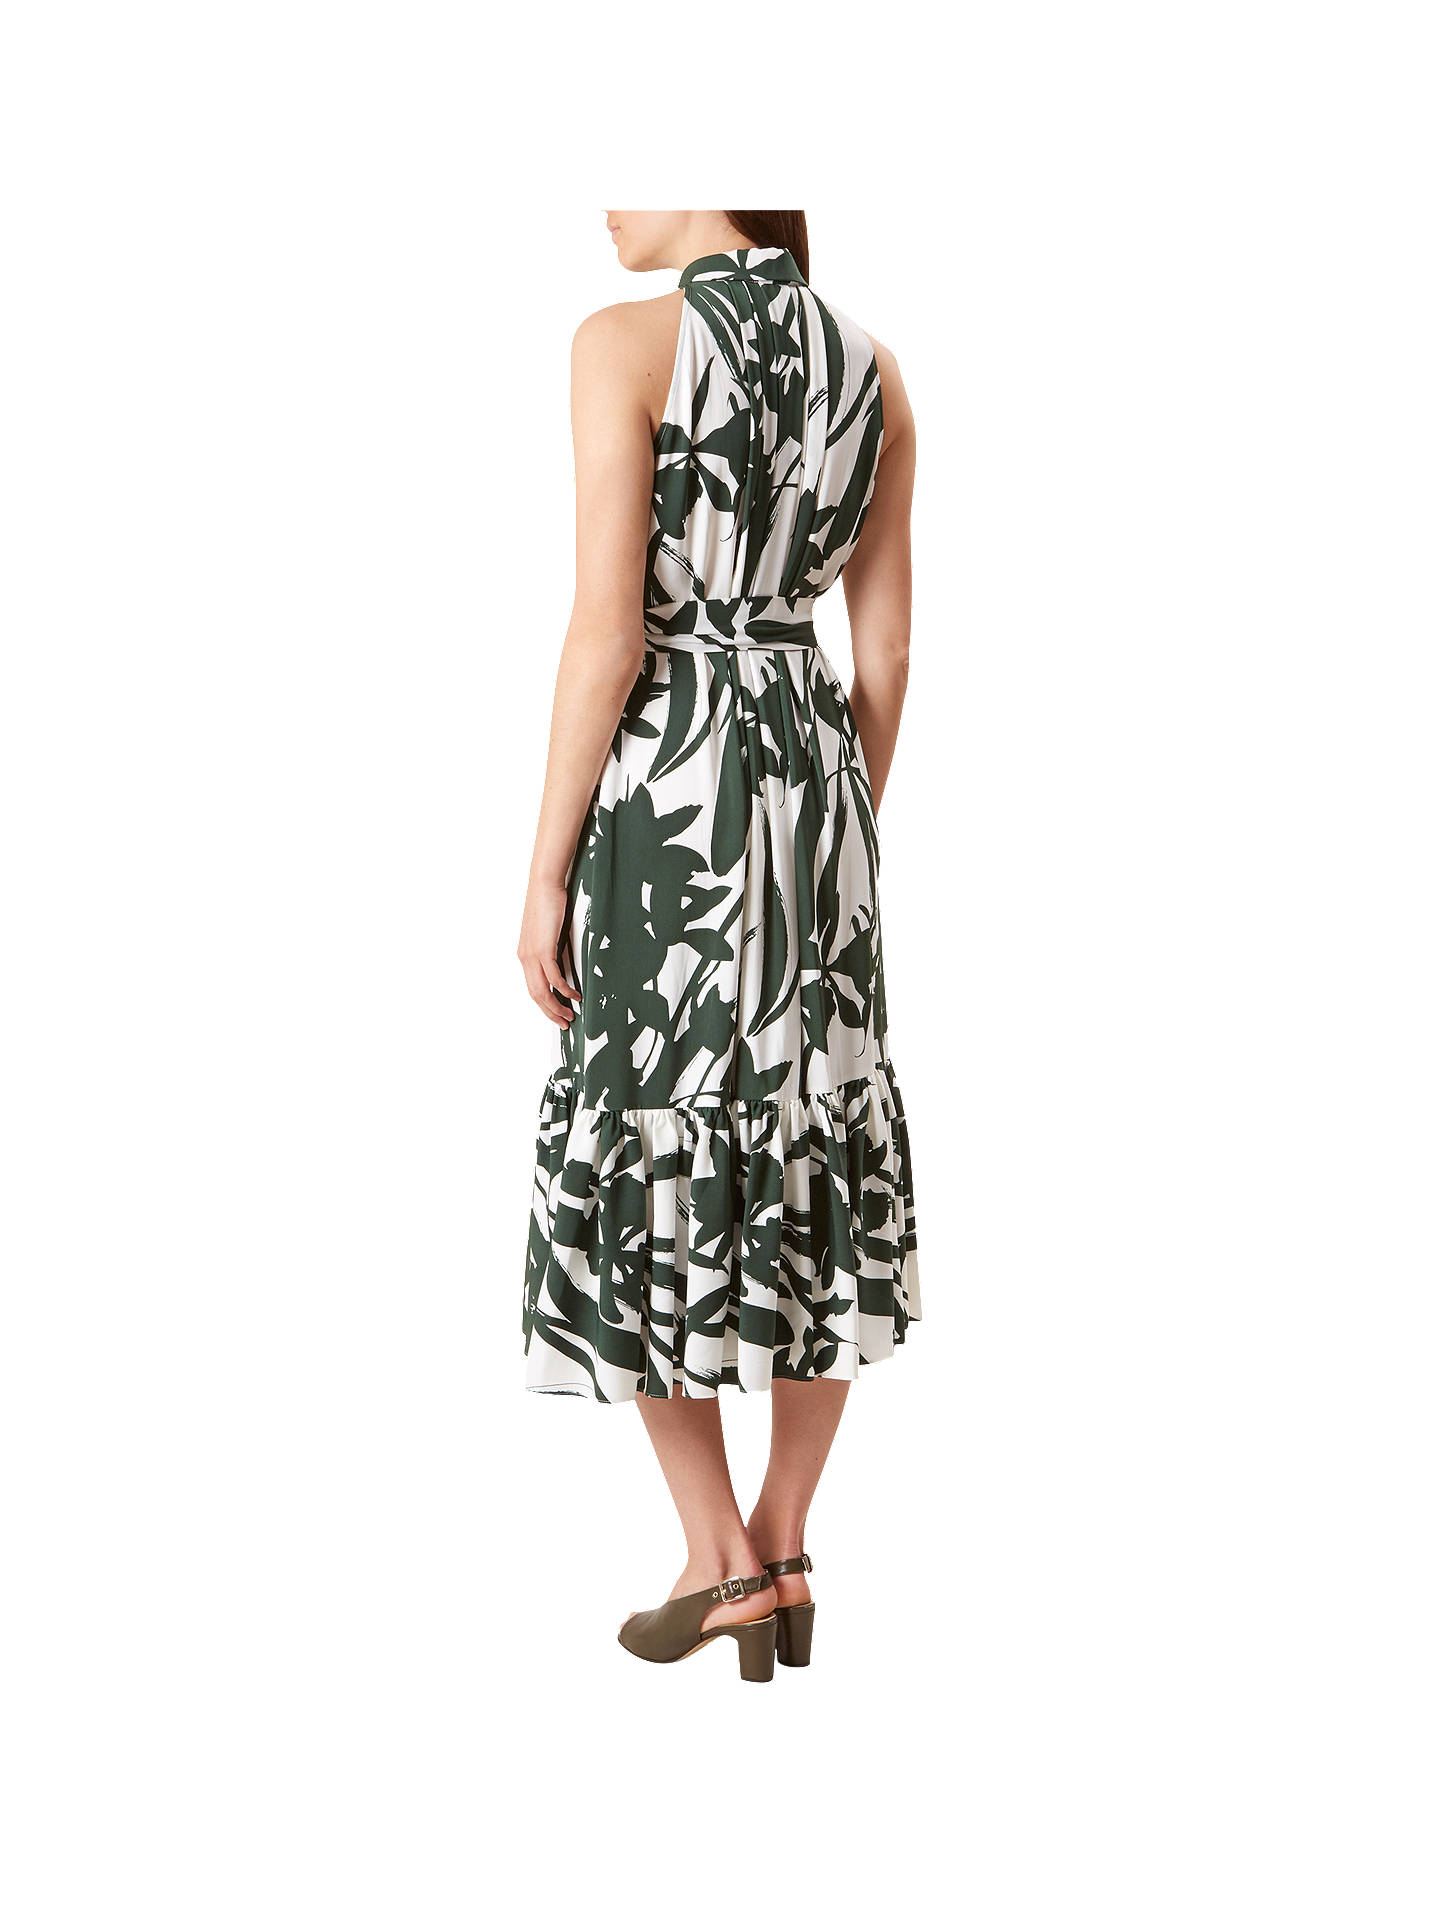 a63b1b1563 ... Buy Hobbs Maida Dress